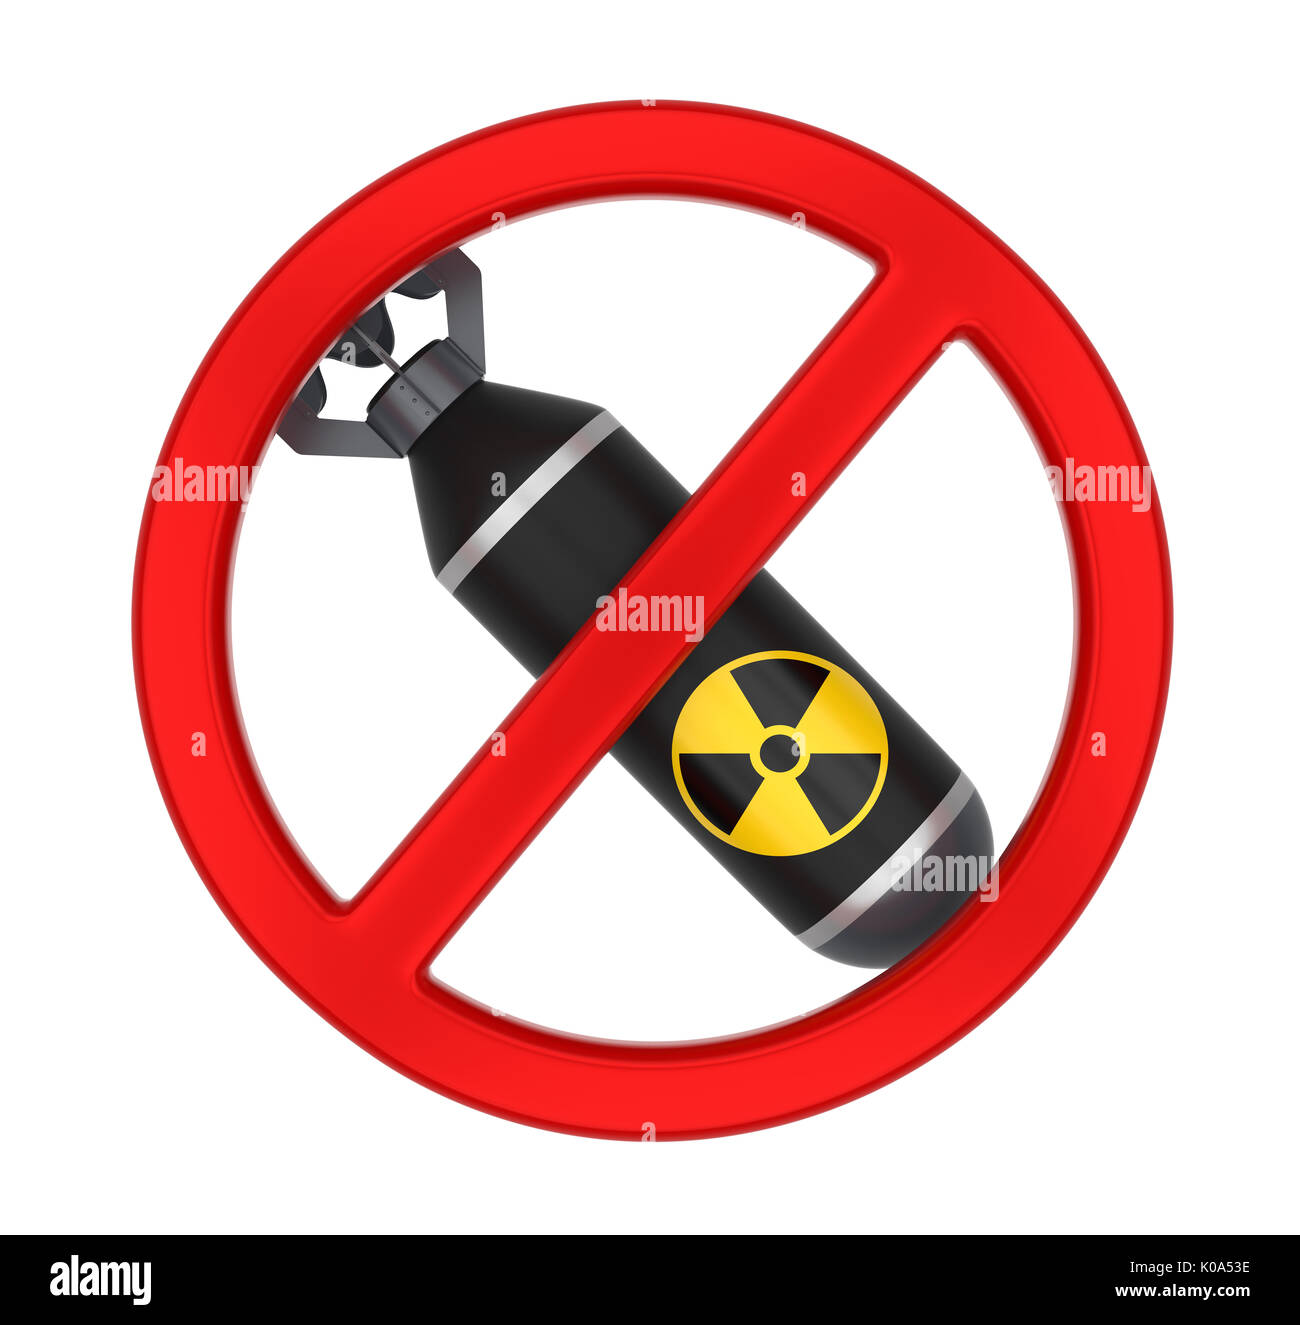 No Nuclear Bomb Sign Isolated - Stock Image